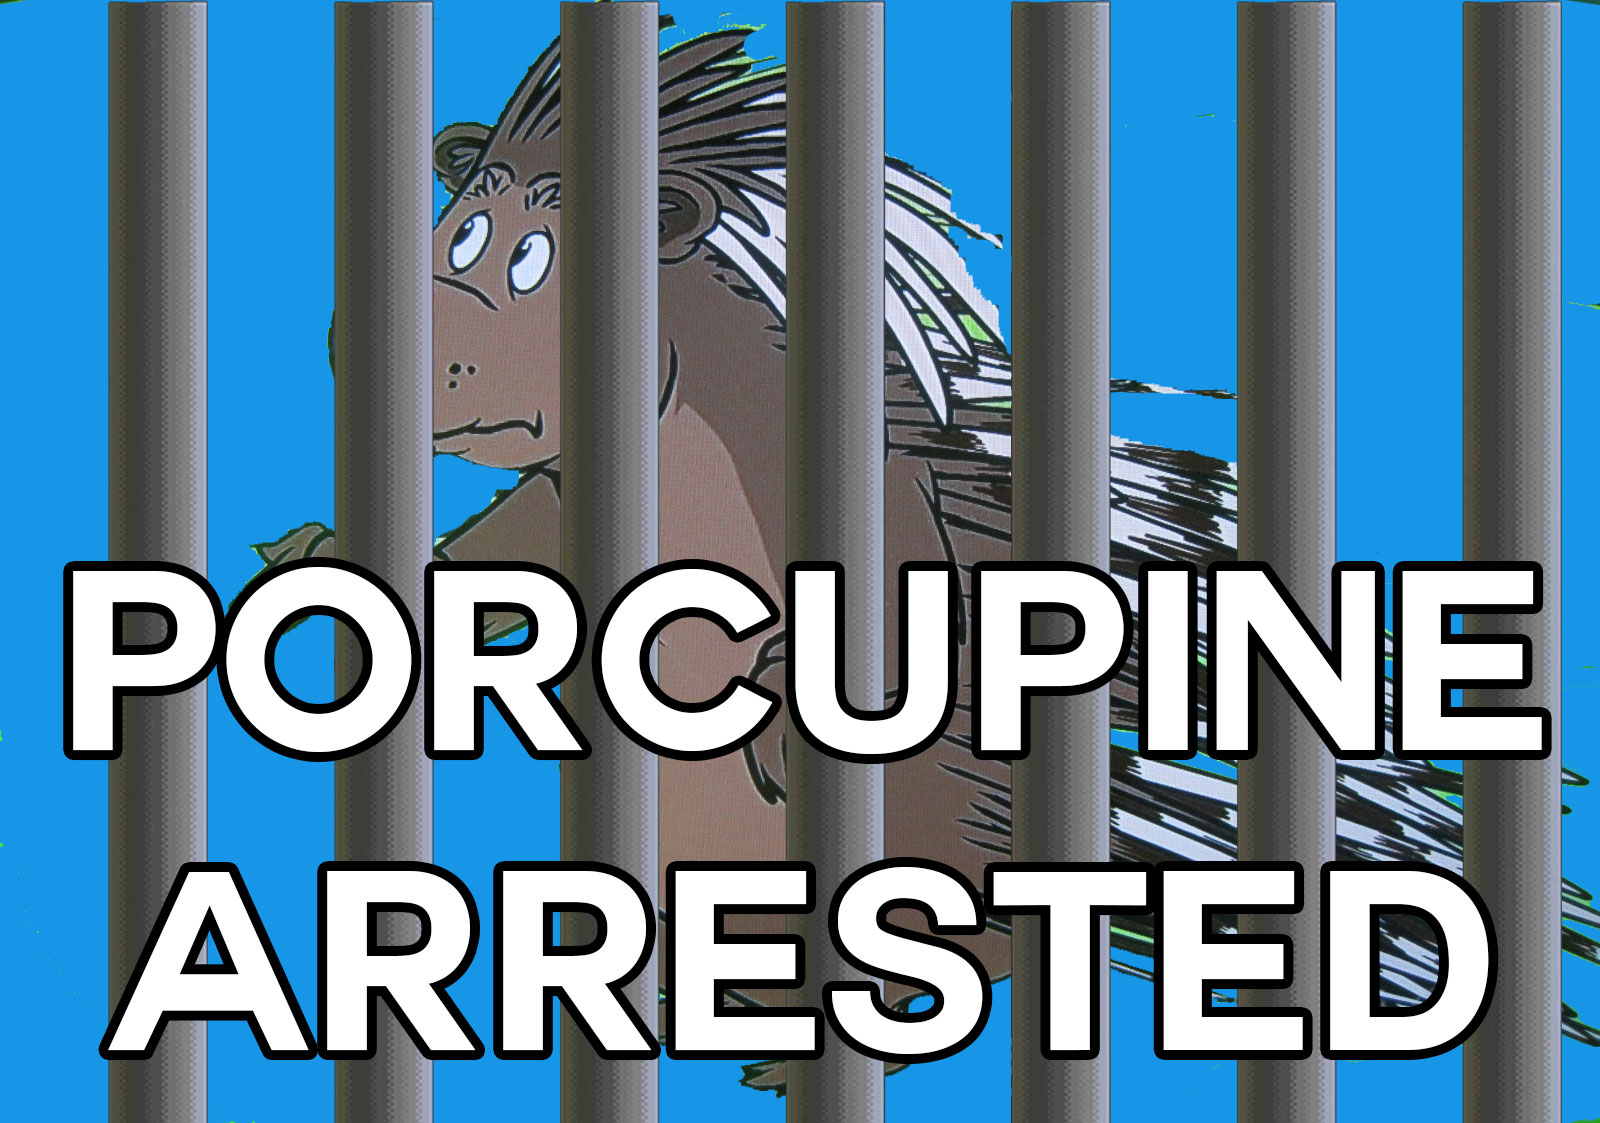 Porcupine-Arrested